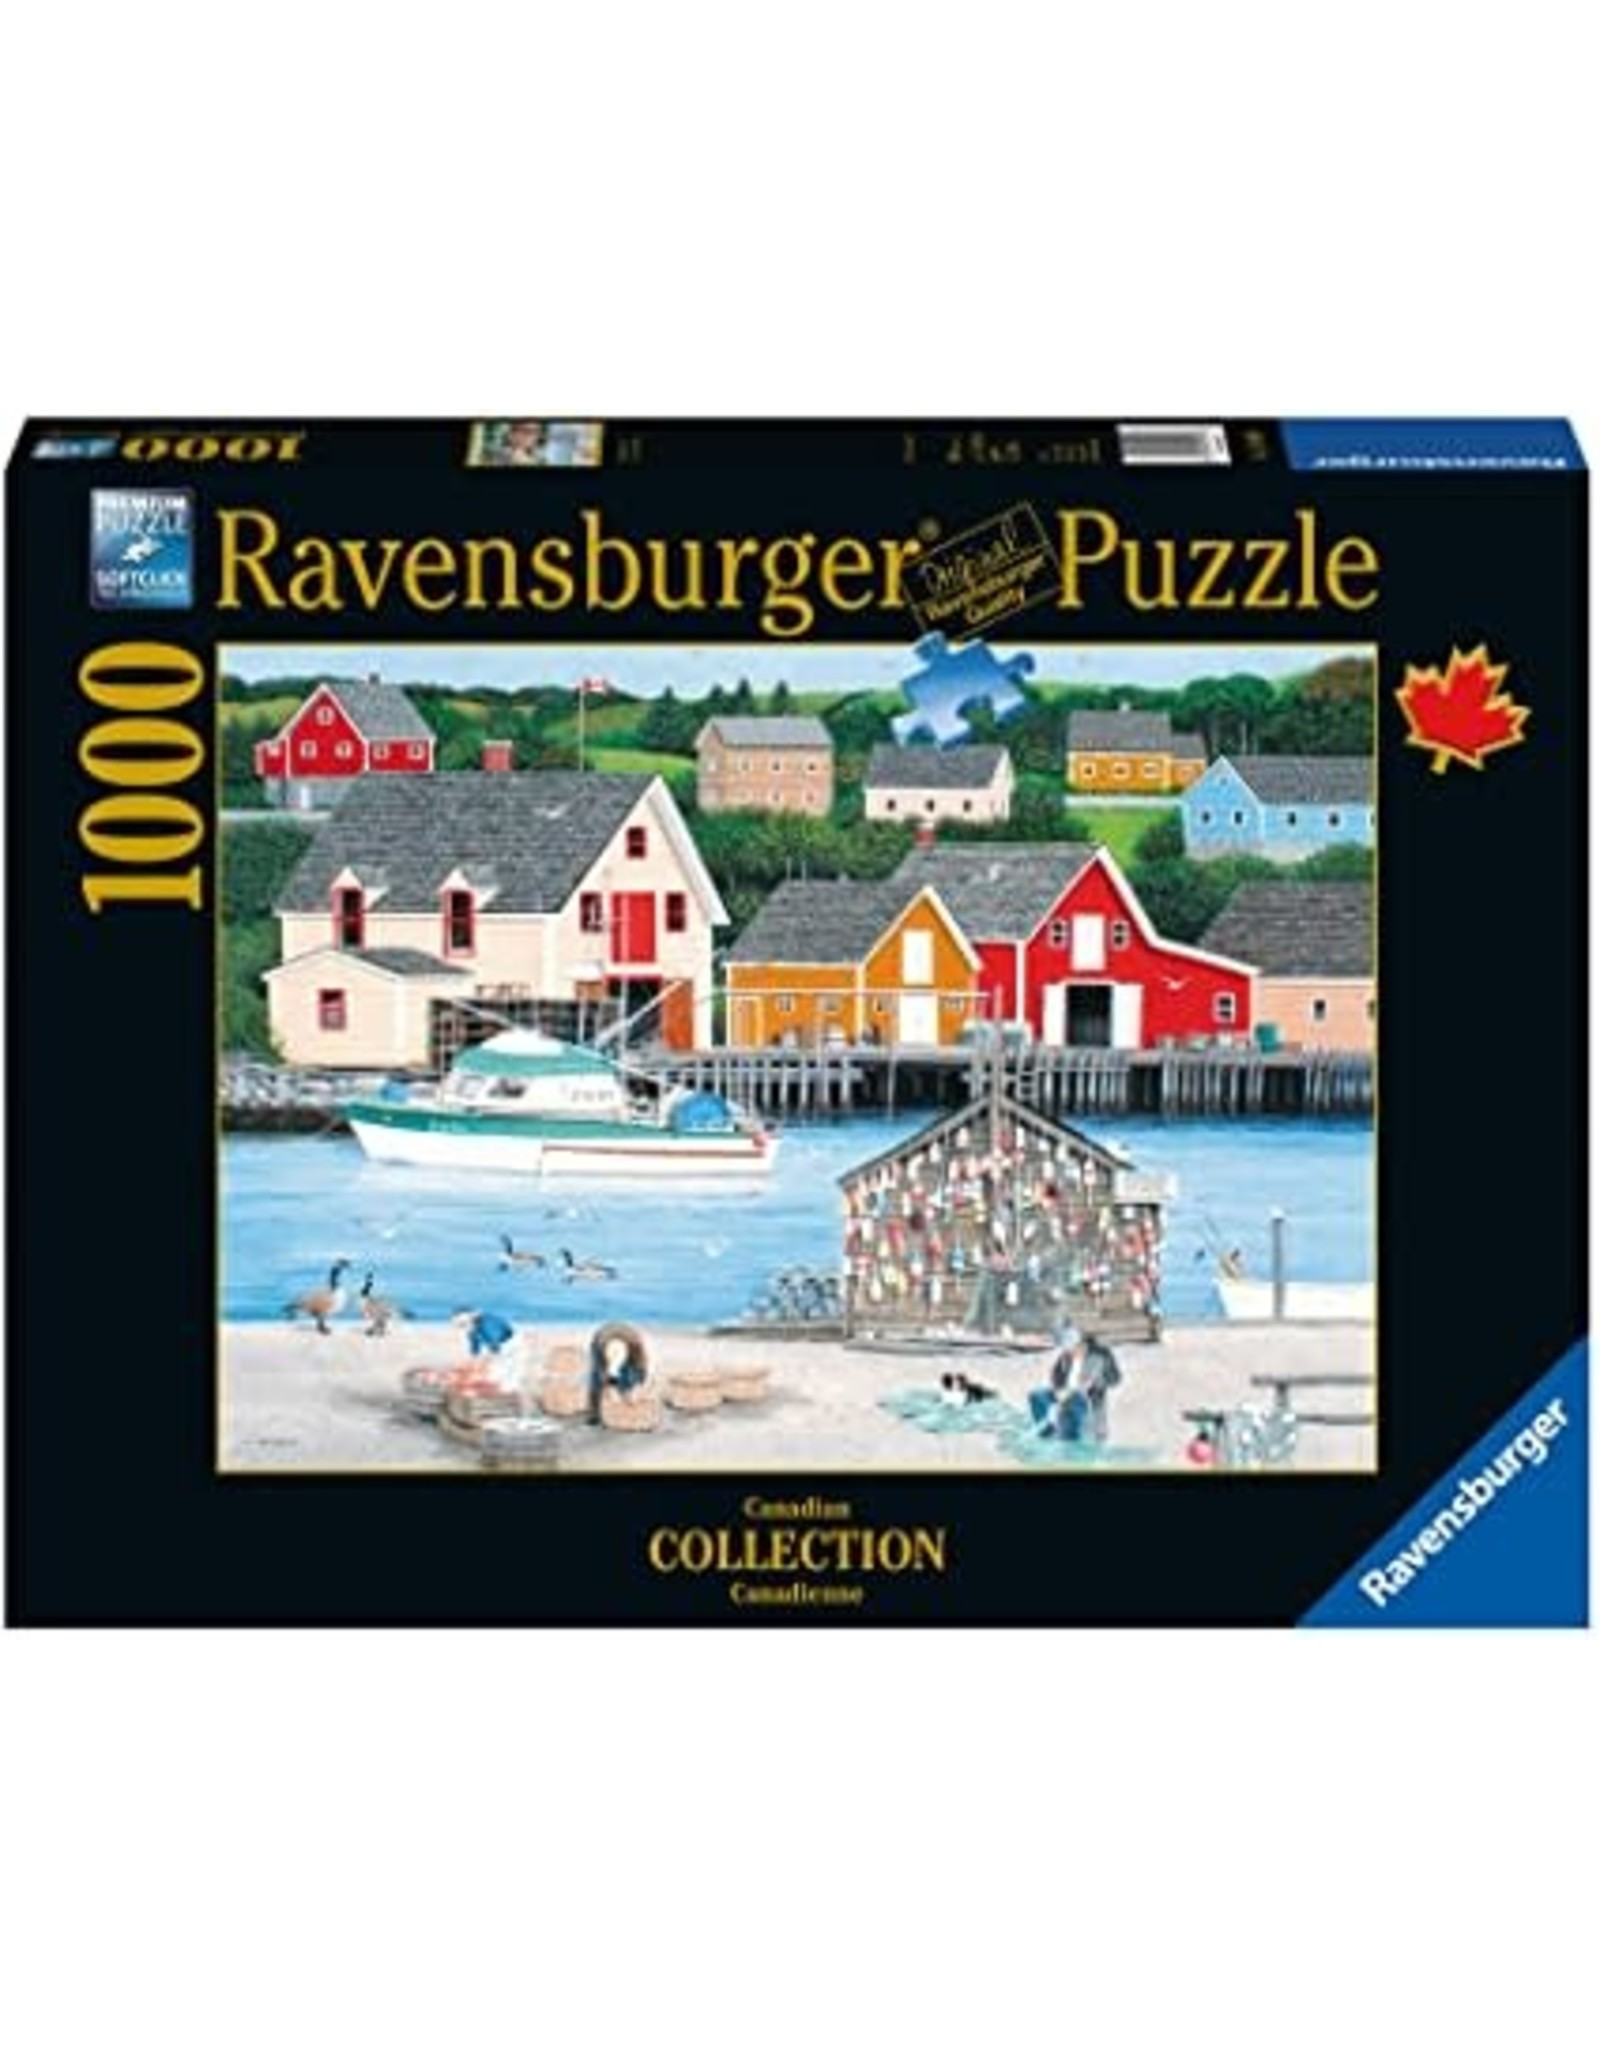 Ravensburger 1000 pcs. Fisherman's Cove Puzzle